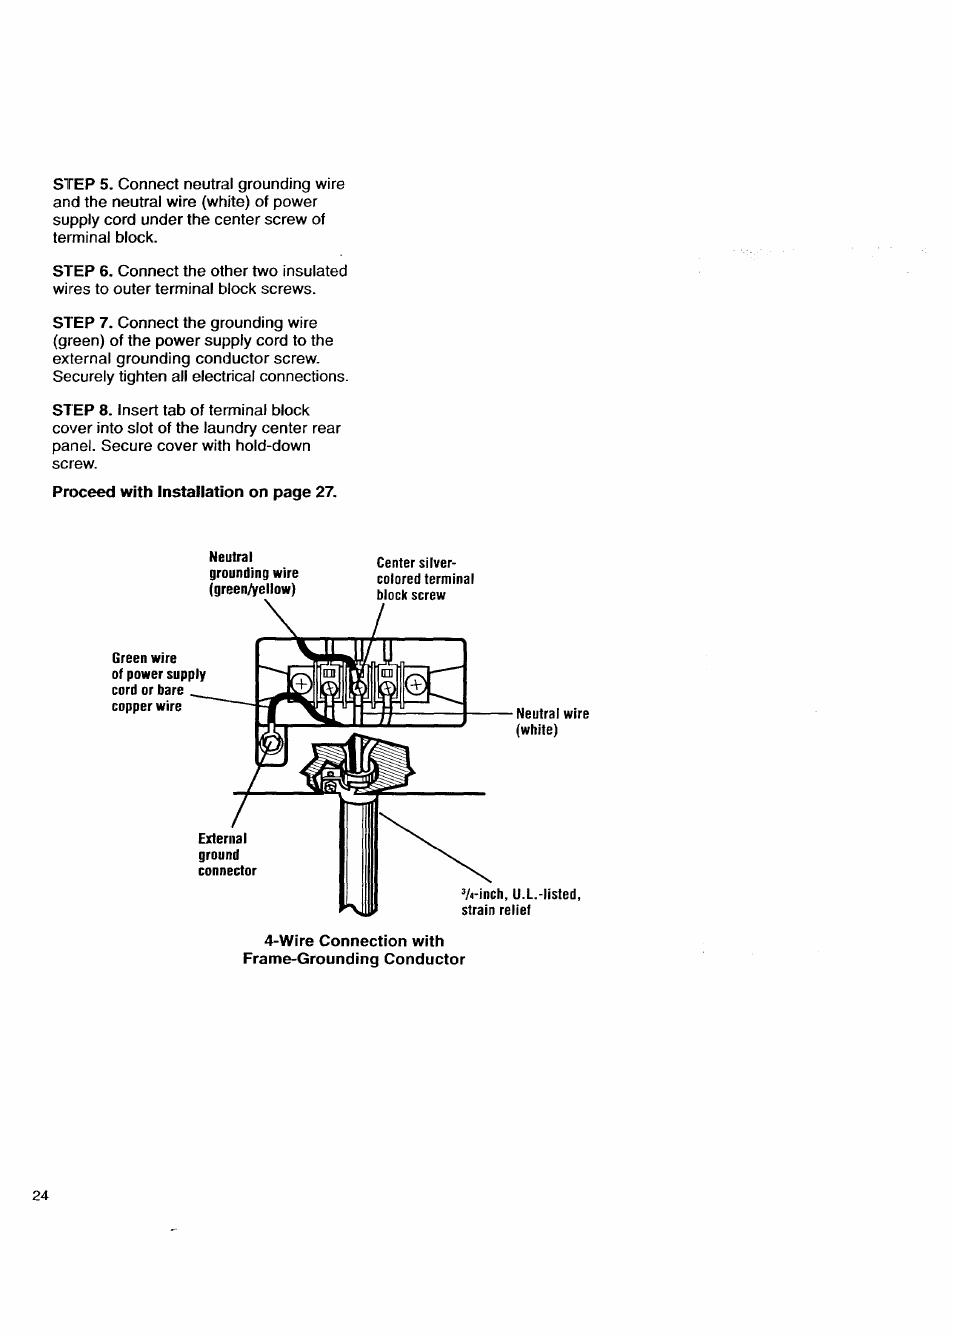 medium resolution of wire connection with frame grounding conductor kenmore washer dryer user manual page 24 66